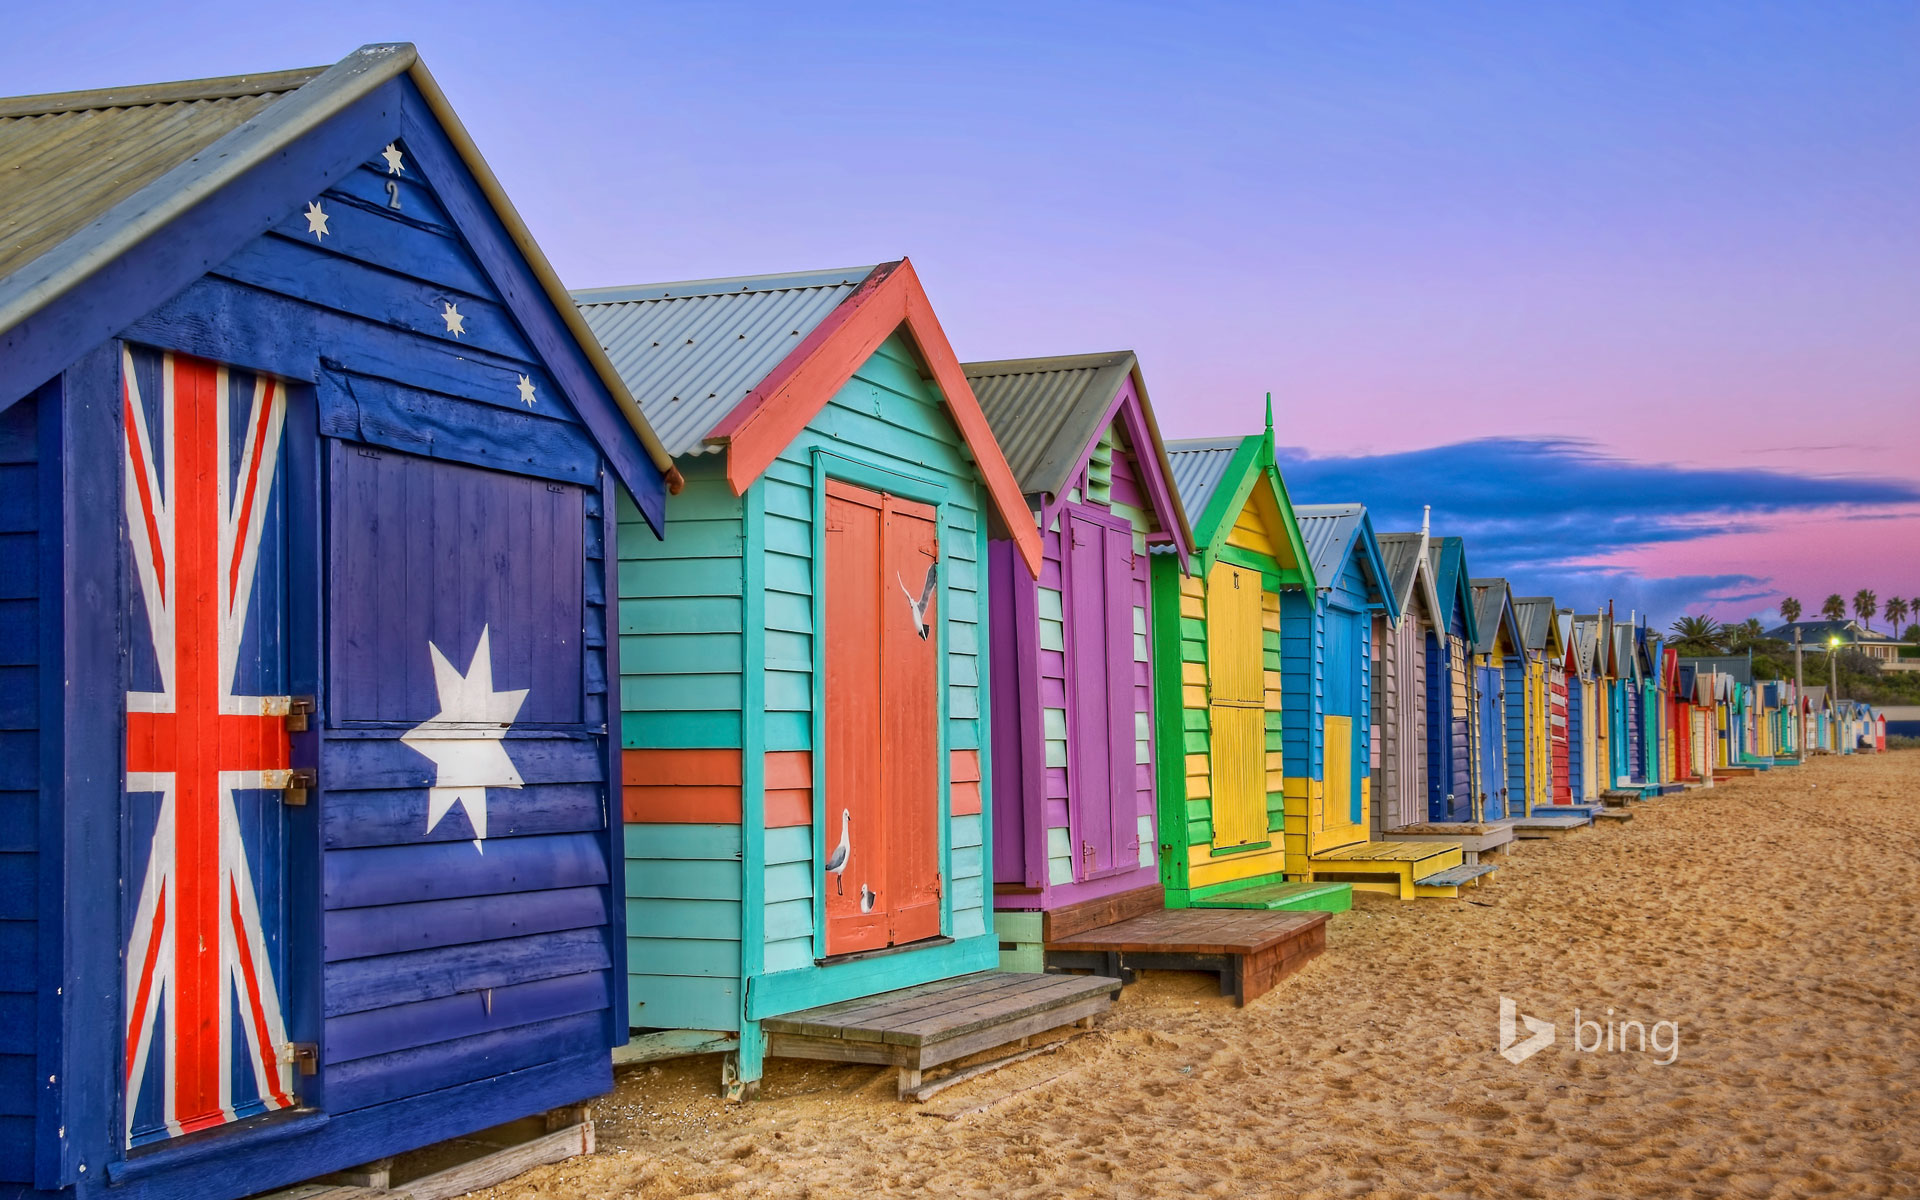 Bathing boxes line the beach at Brighton, Victoria, Australia